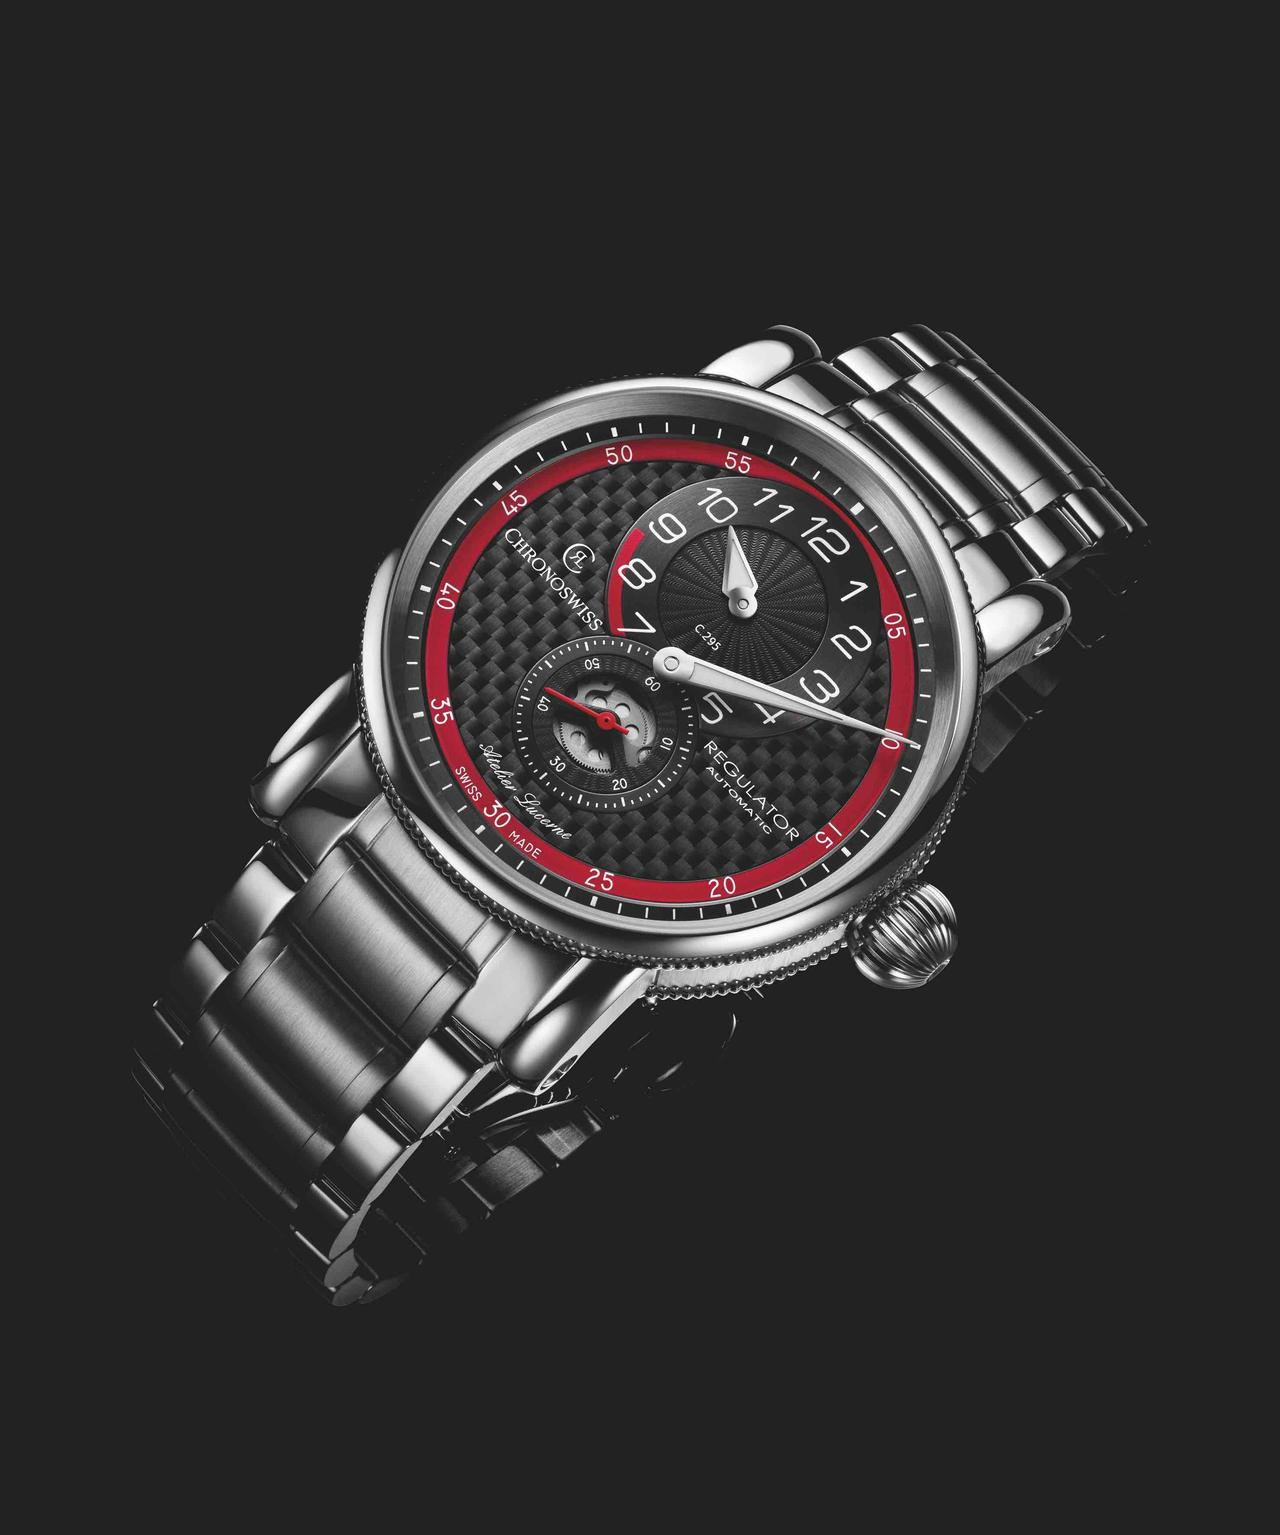 Chronoswiss Launches a Racing Regulator